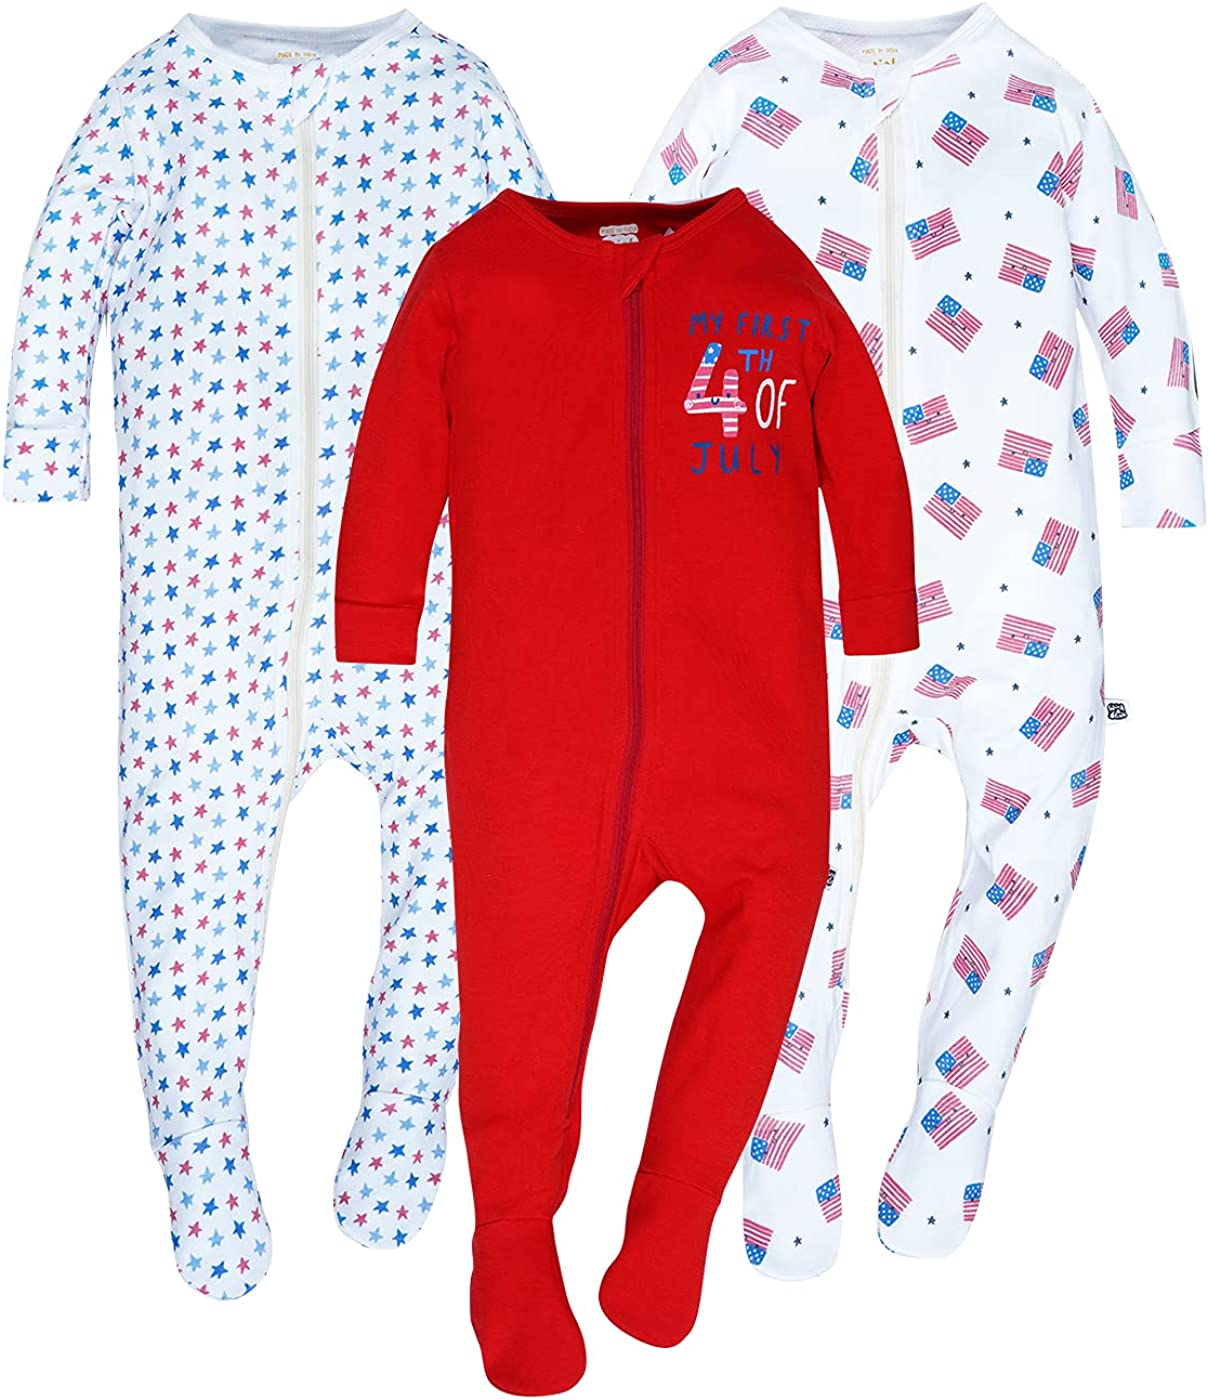 WINK & BLINk 4th of July Organic Baby Sleep N' Play, 3-Pack Jumpsuit, 100% Organic One-Piece Cotton Fotted Pajamas